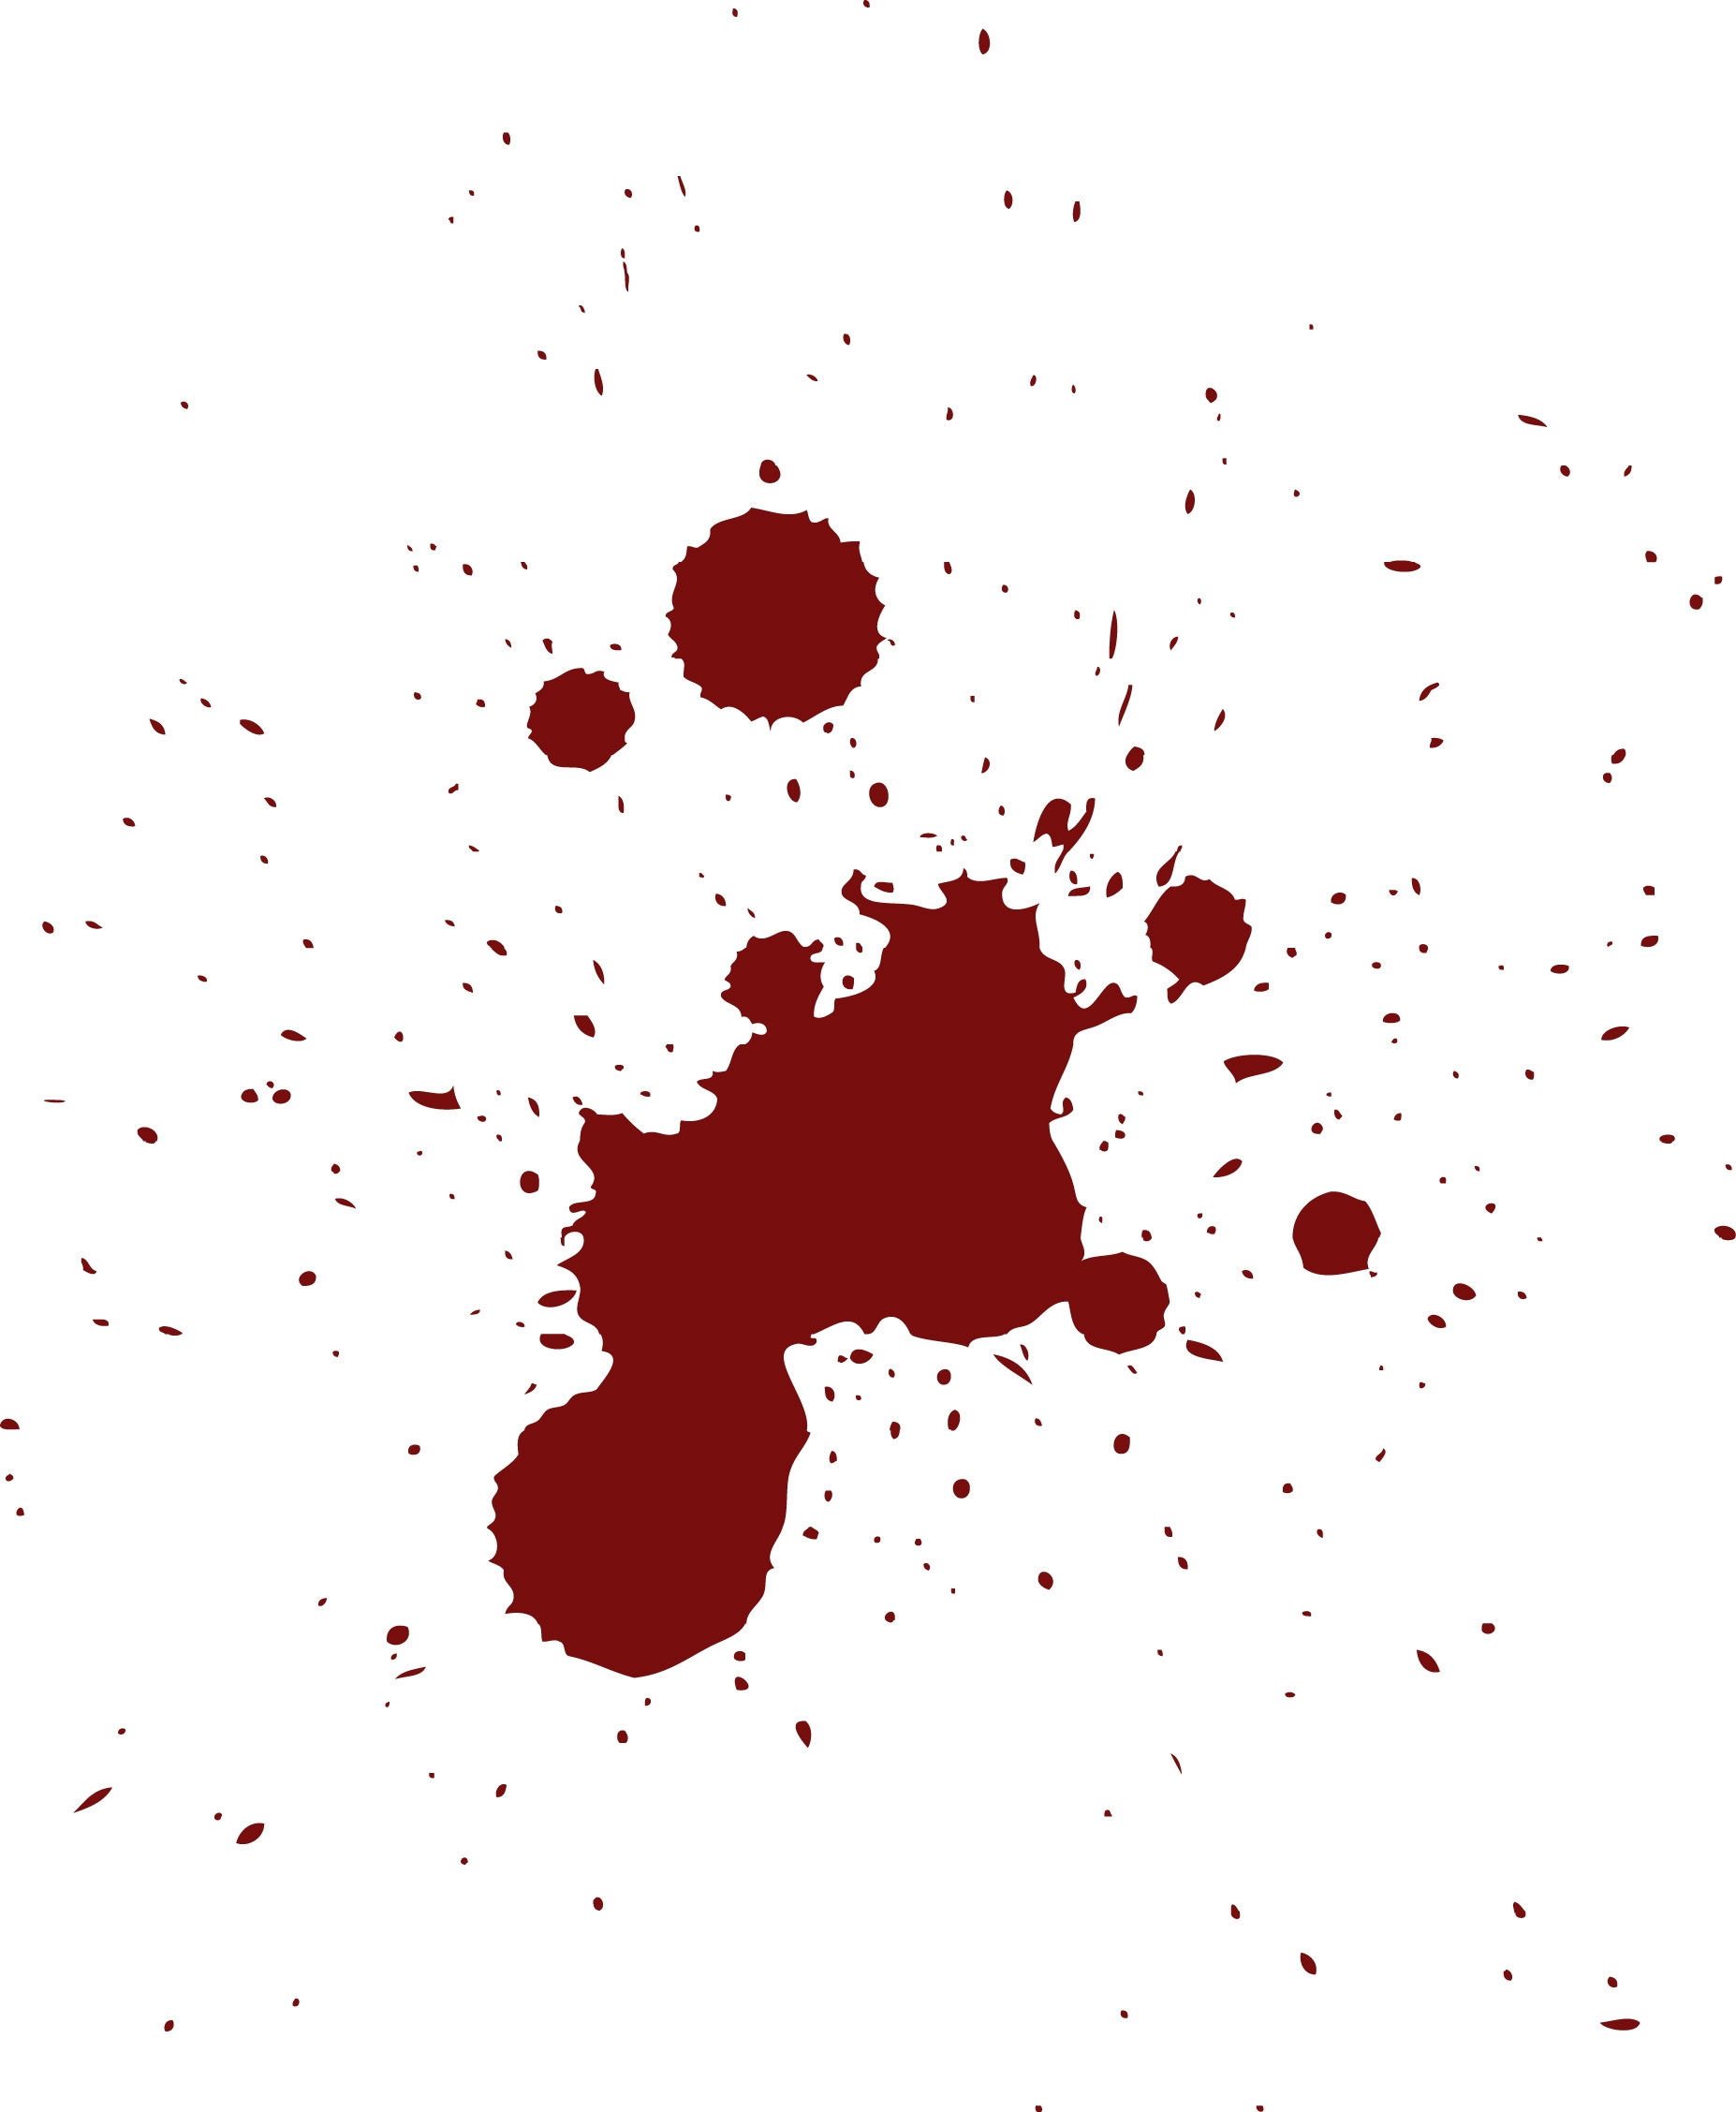 Free blood stain clipart picture black and white Blood splatter clipart - ClipartFest picture black and white